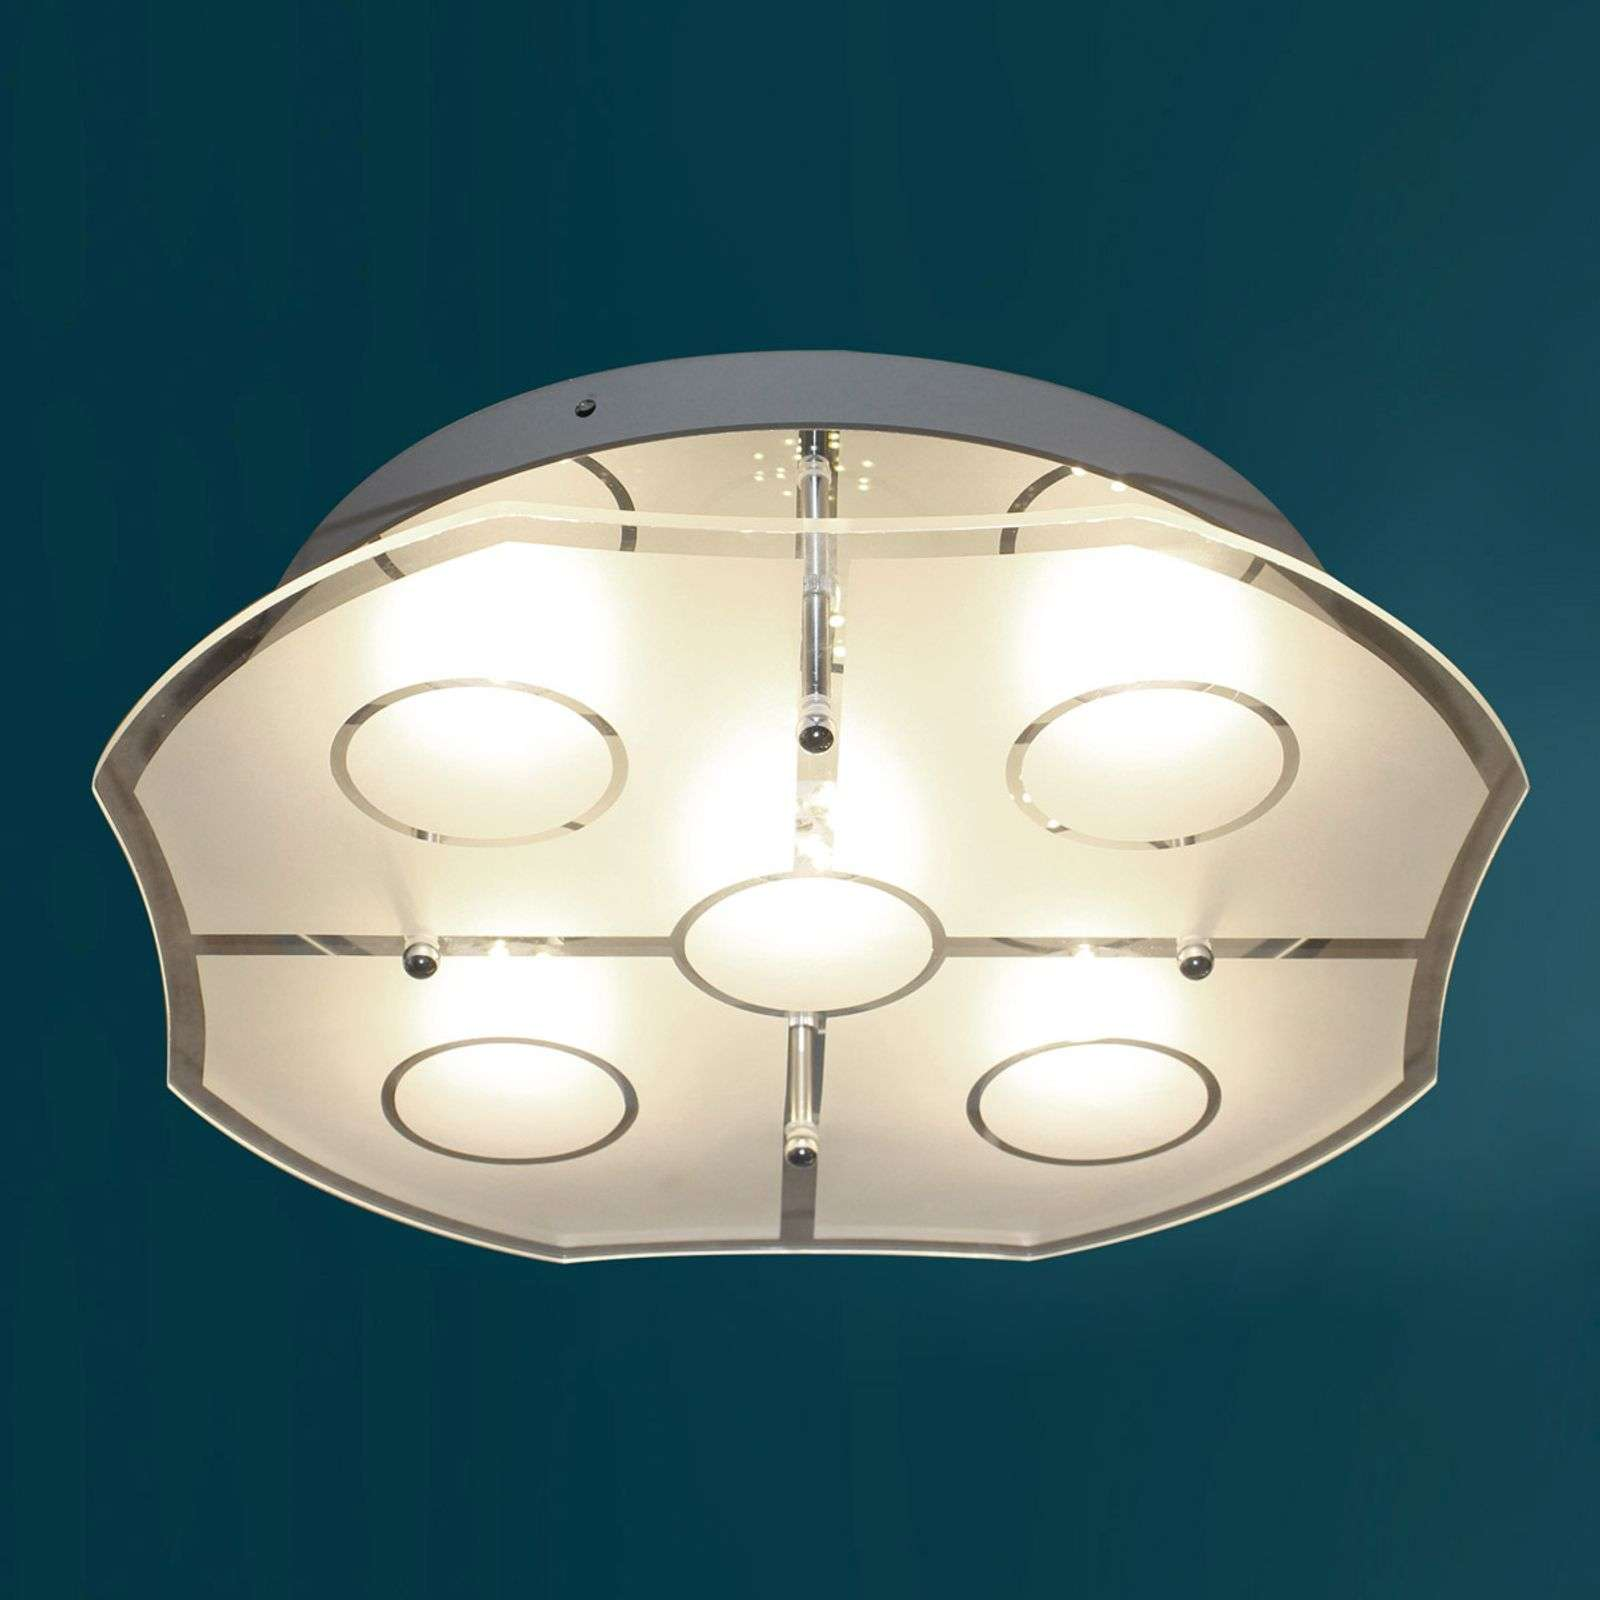 Plafonnier LED Varese de conception attrayante